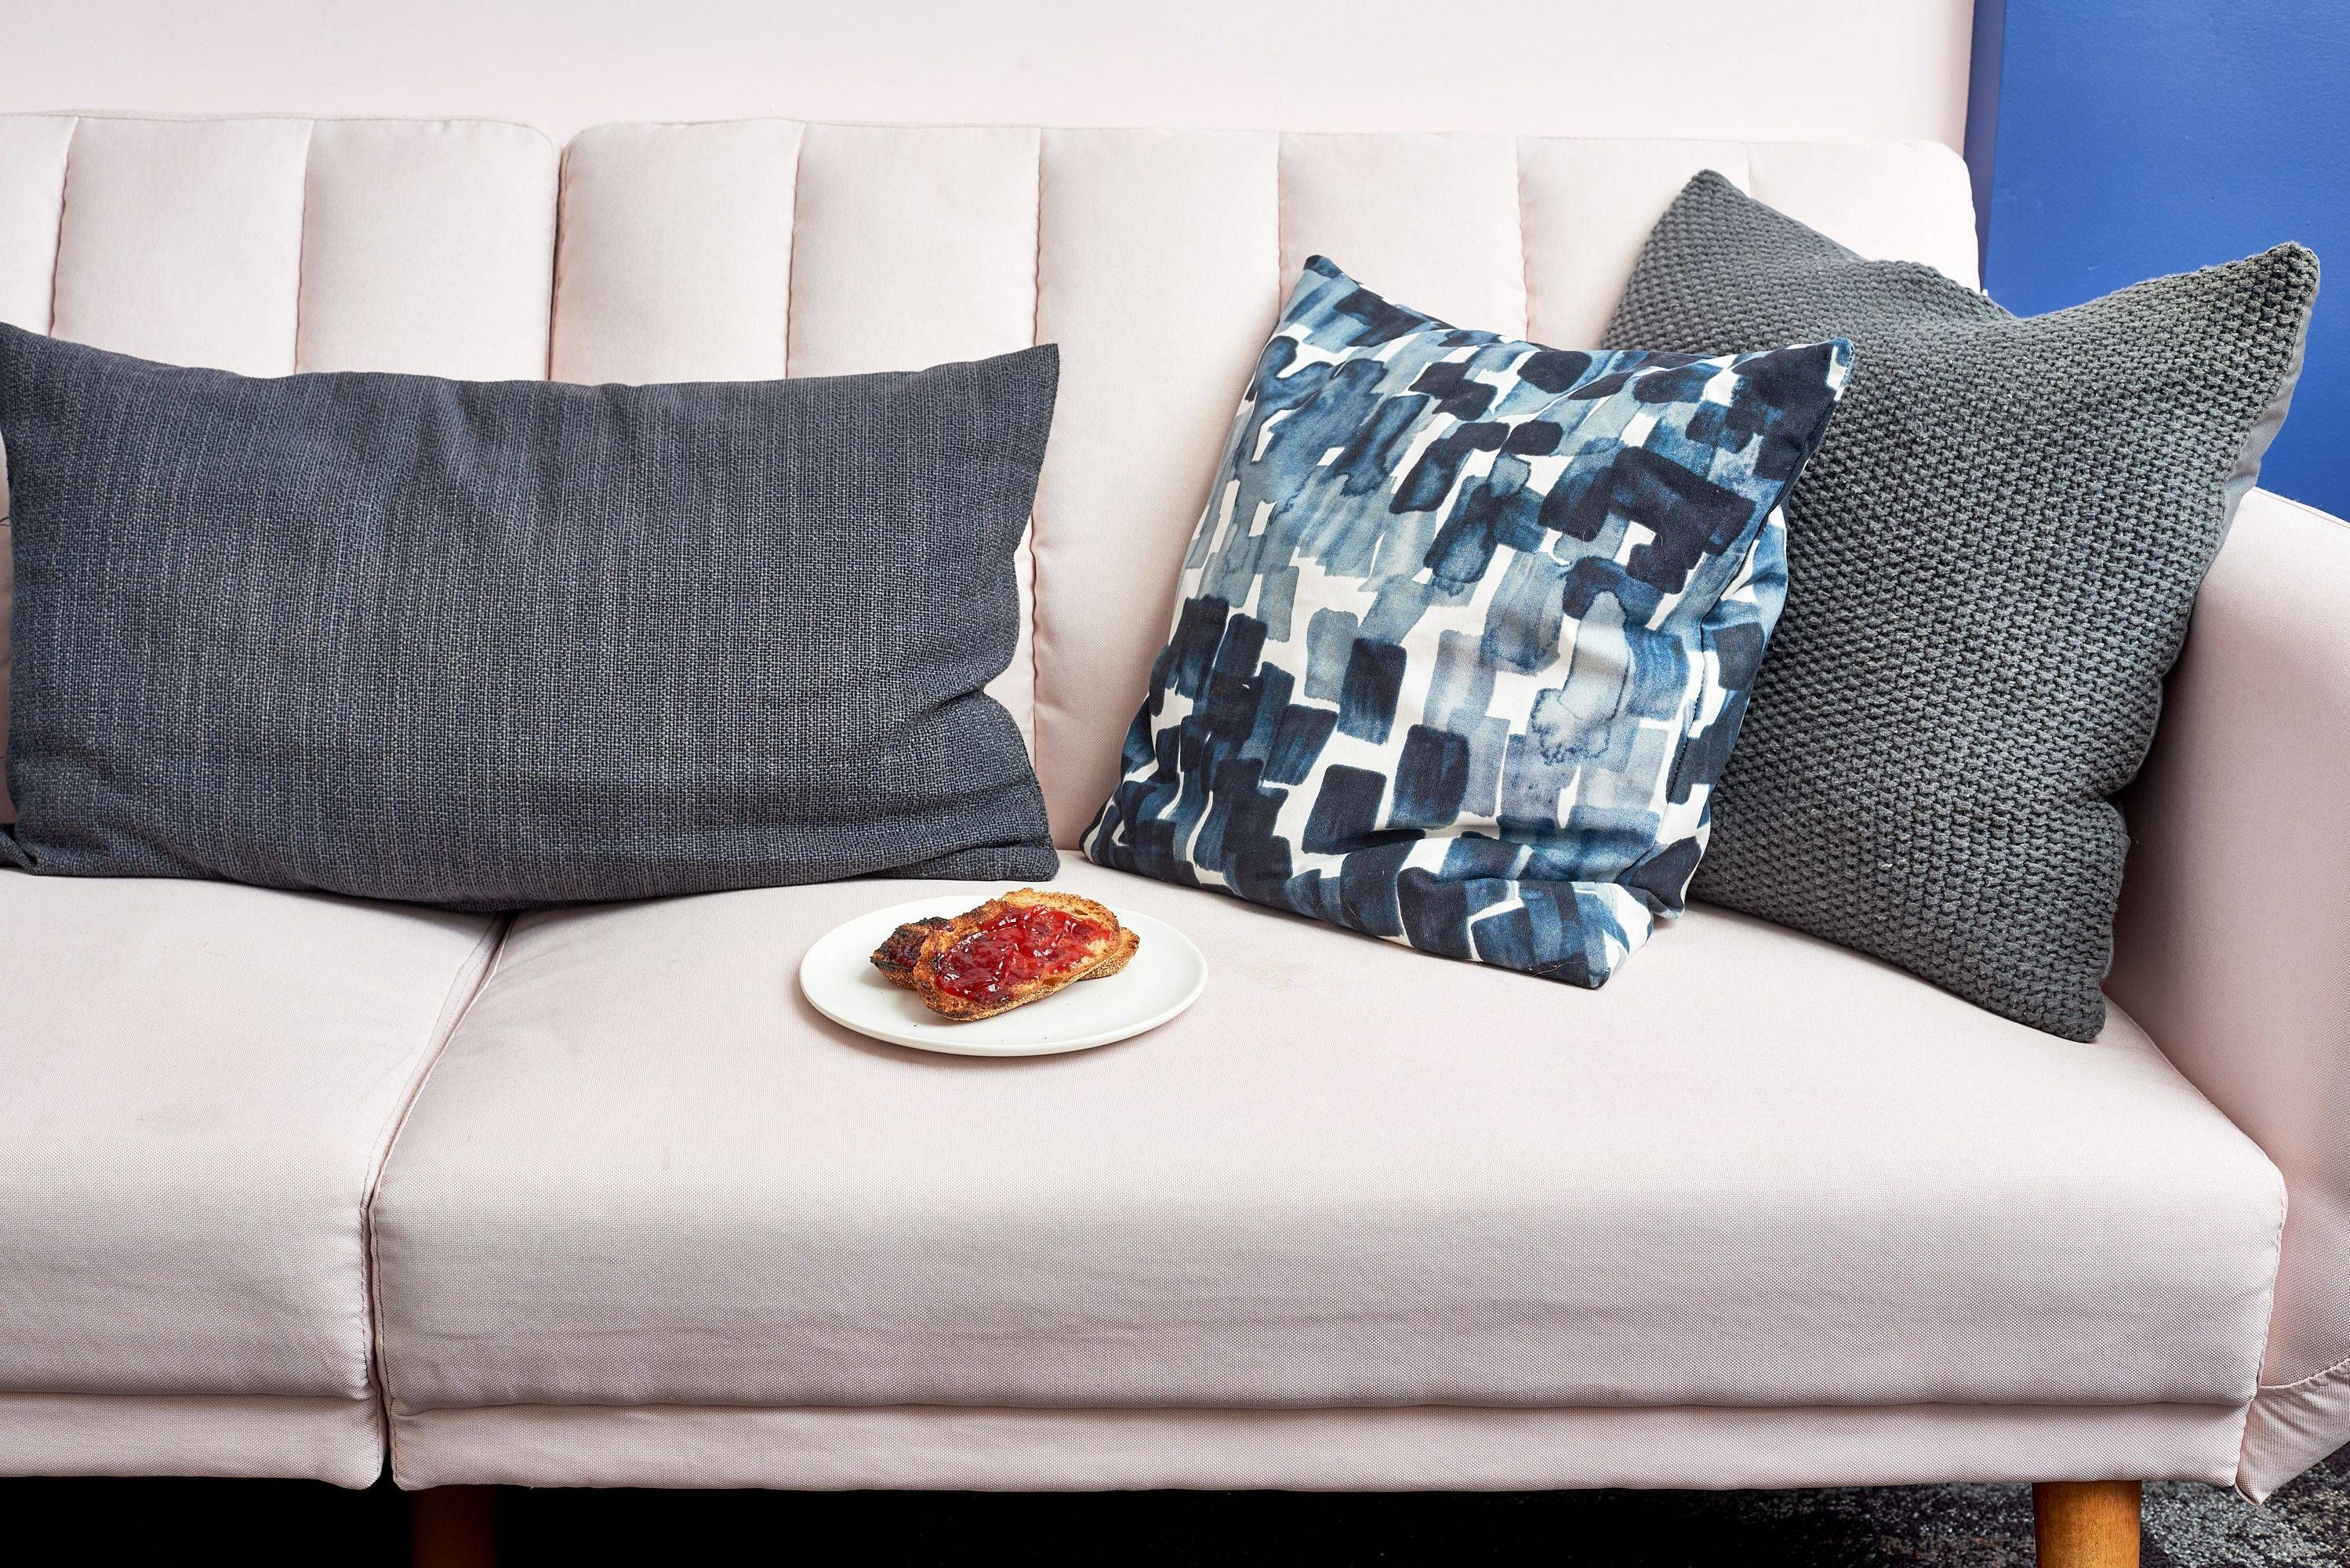 How To Fix Sagging Couch Cushions Fix Sagging Couch Cushions On